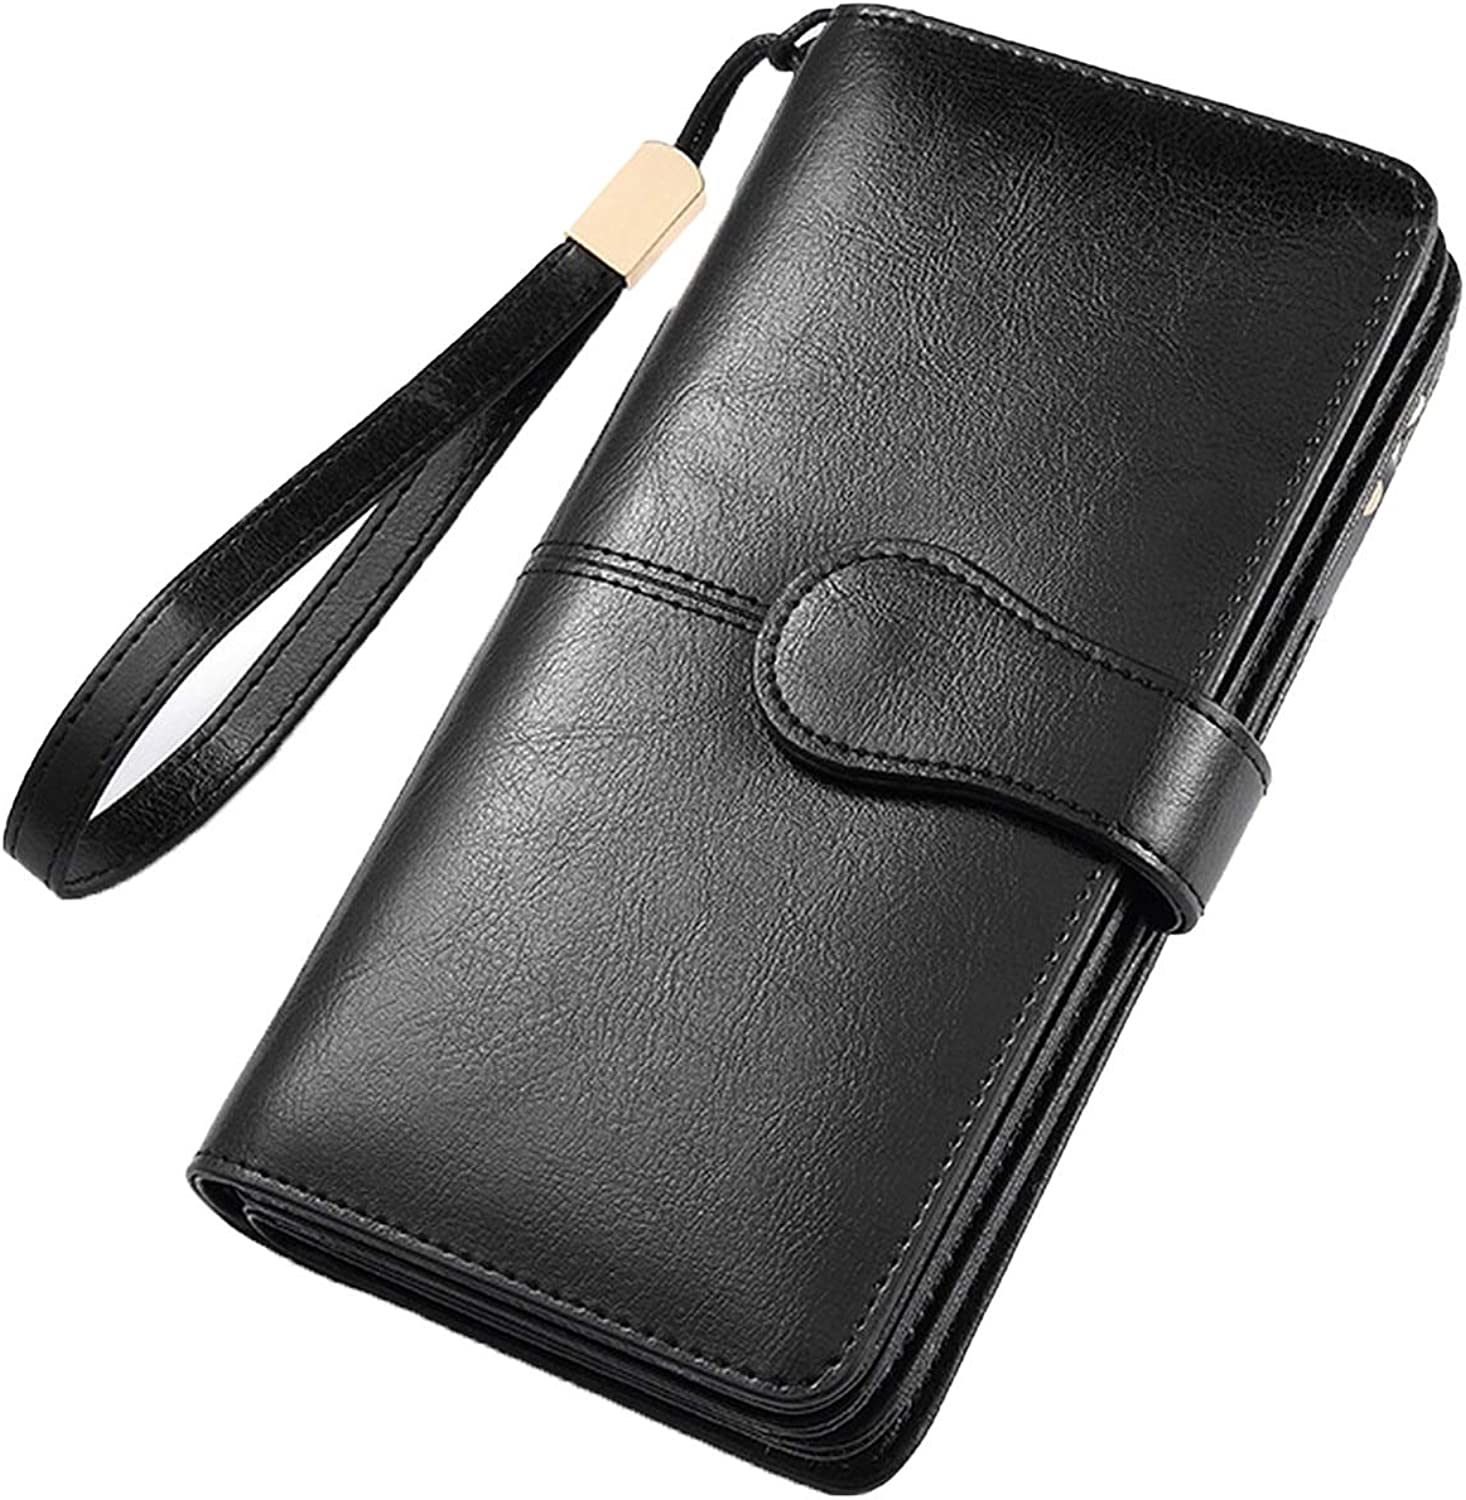 Wallet Women Long Split Leather Folding Wallet Ladies Purse Thin Female Wallet With Wrist Let Strap For Coin,Black